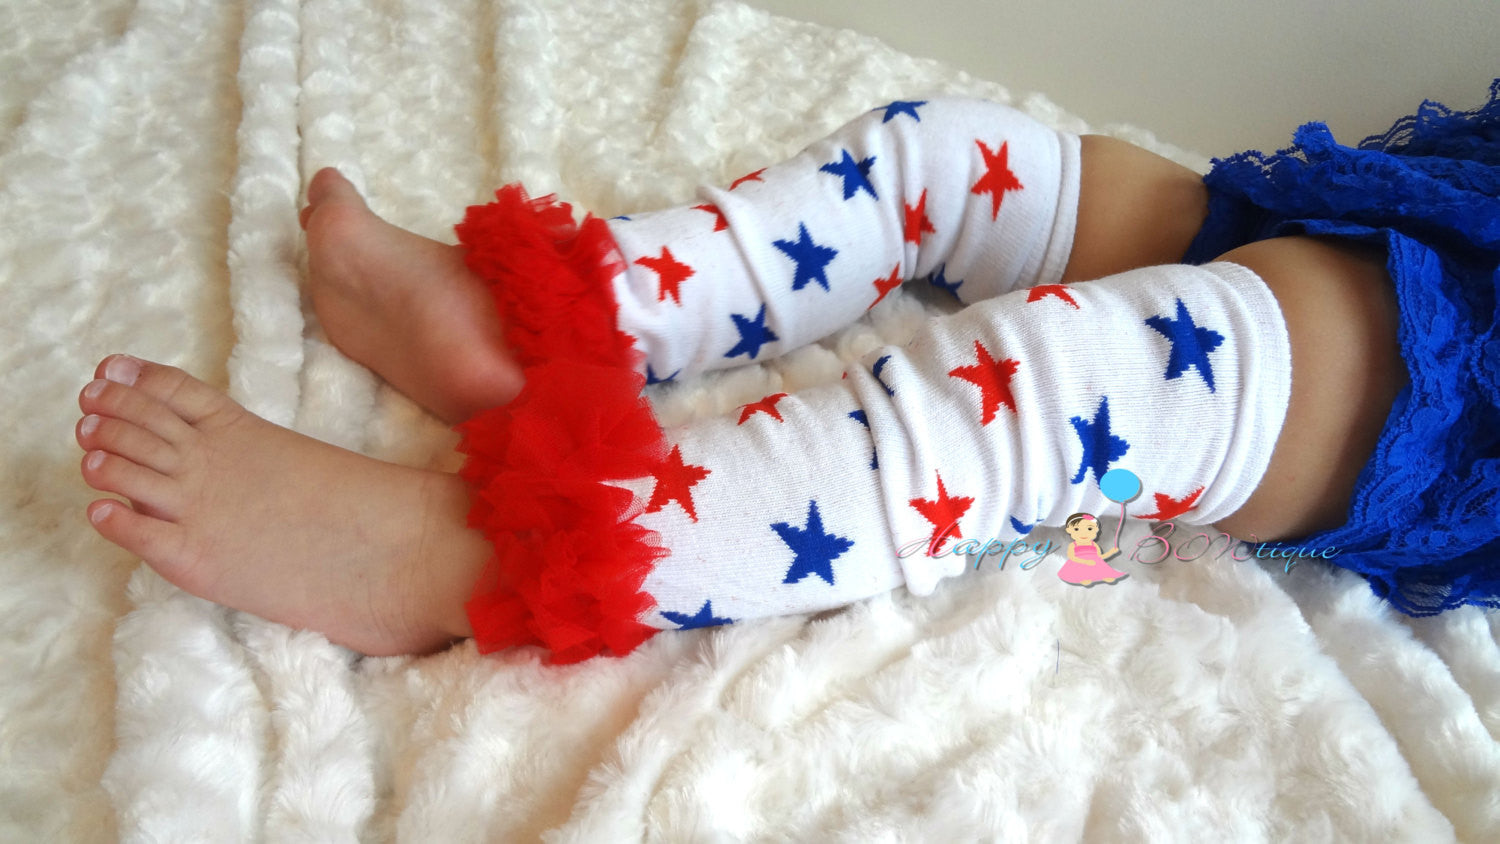 4th of July Leg Warmers and headband set, July 4th Stars leg warmers set, baby set, girls leg warmers, baby leg warmers, Team USA outfit - Happy BOWtique - children's clothing, Baby Girl clothing